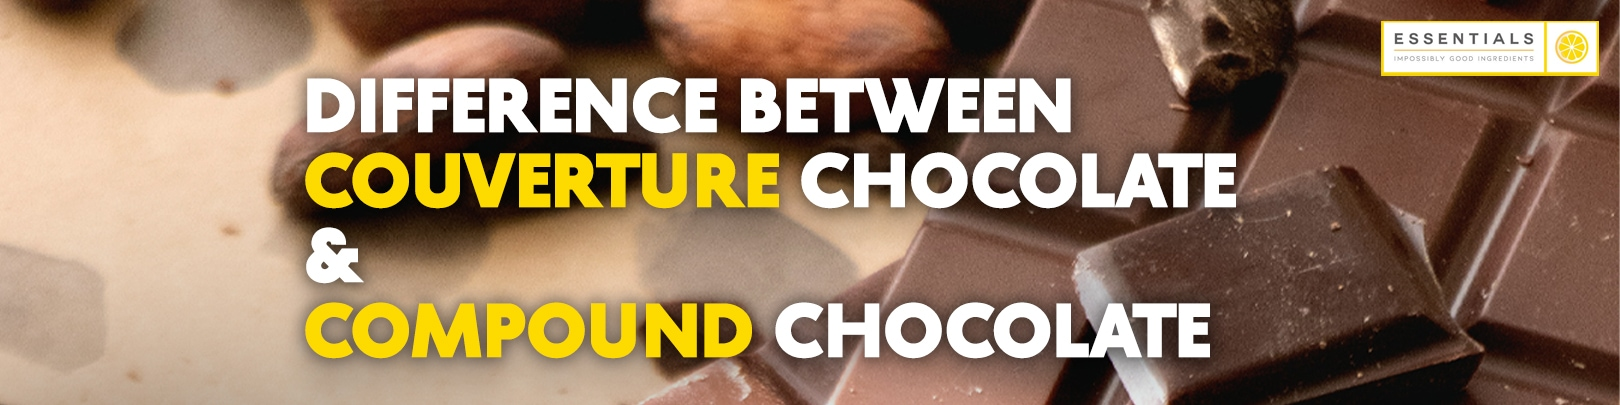 what is the difference between couverture chocolate and compound chocolate